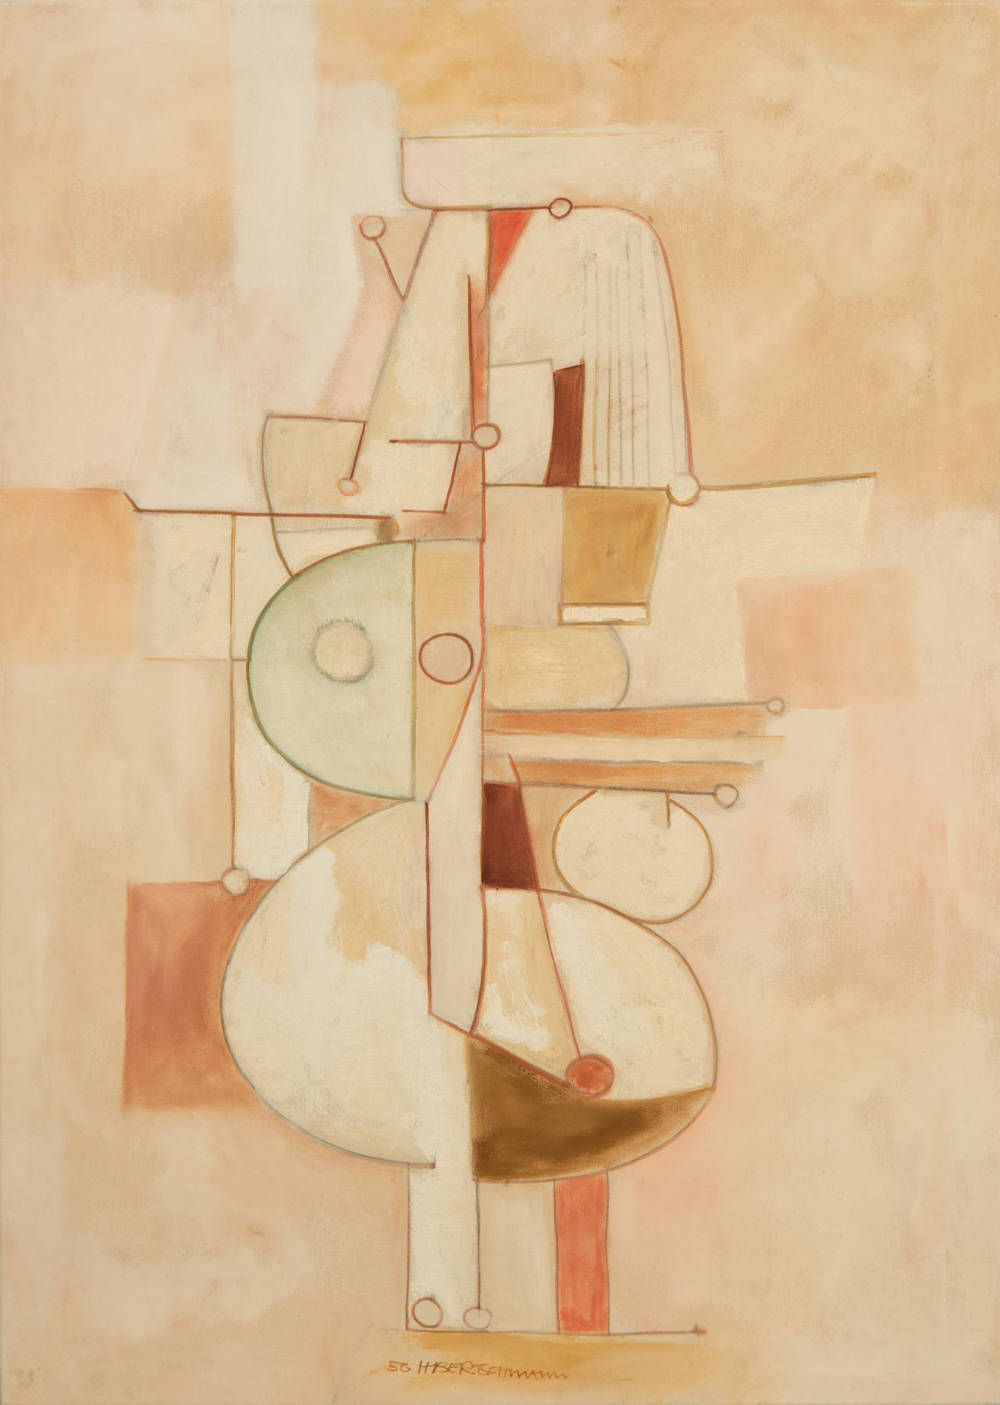 Harry Bertschmann (b. 1931), Untitled, 1956. Oil on canvas, 60 x 43 inches. Dated and signed lower center: 56 HBertschmann